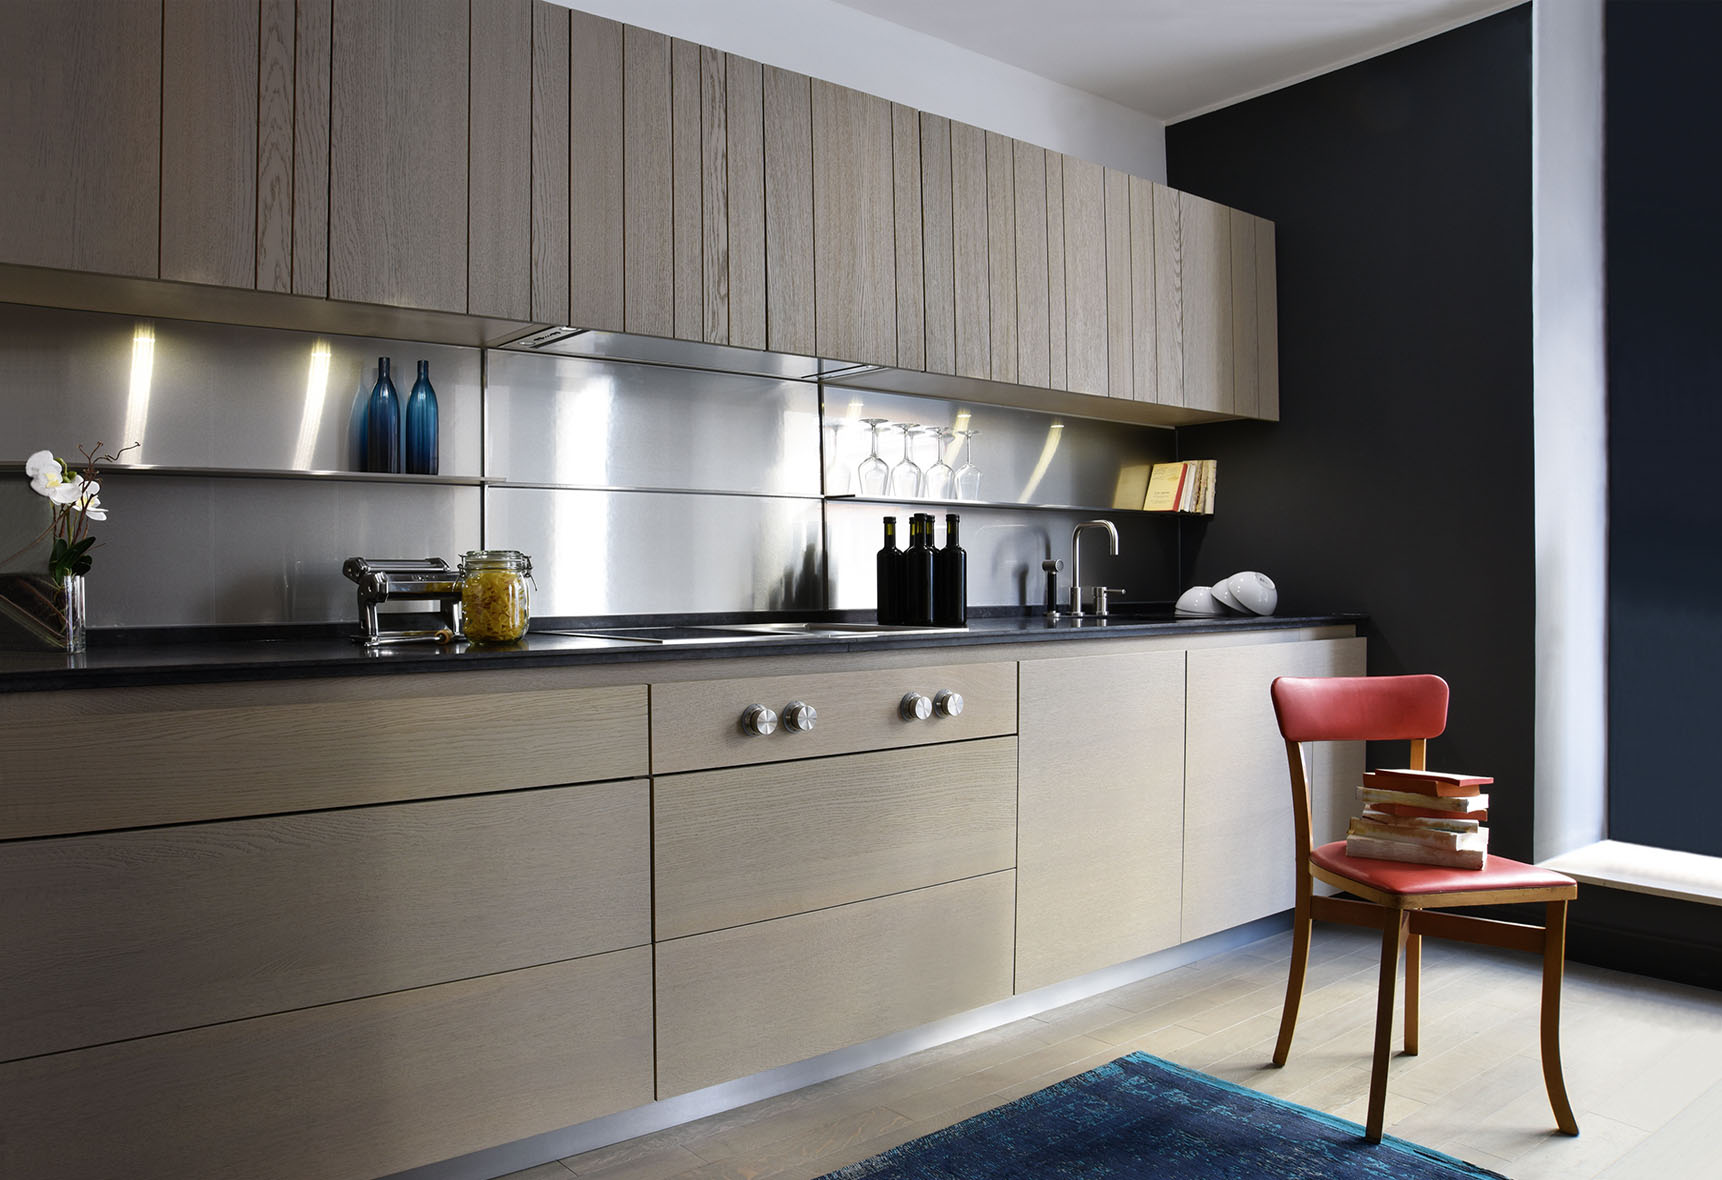 An elegant kitchen with inviting lines and standout design